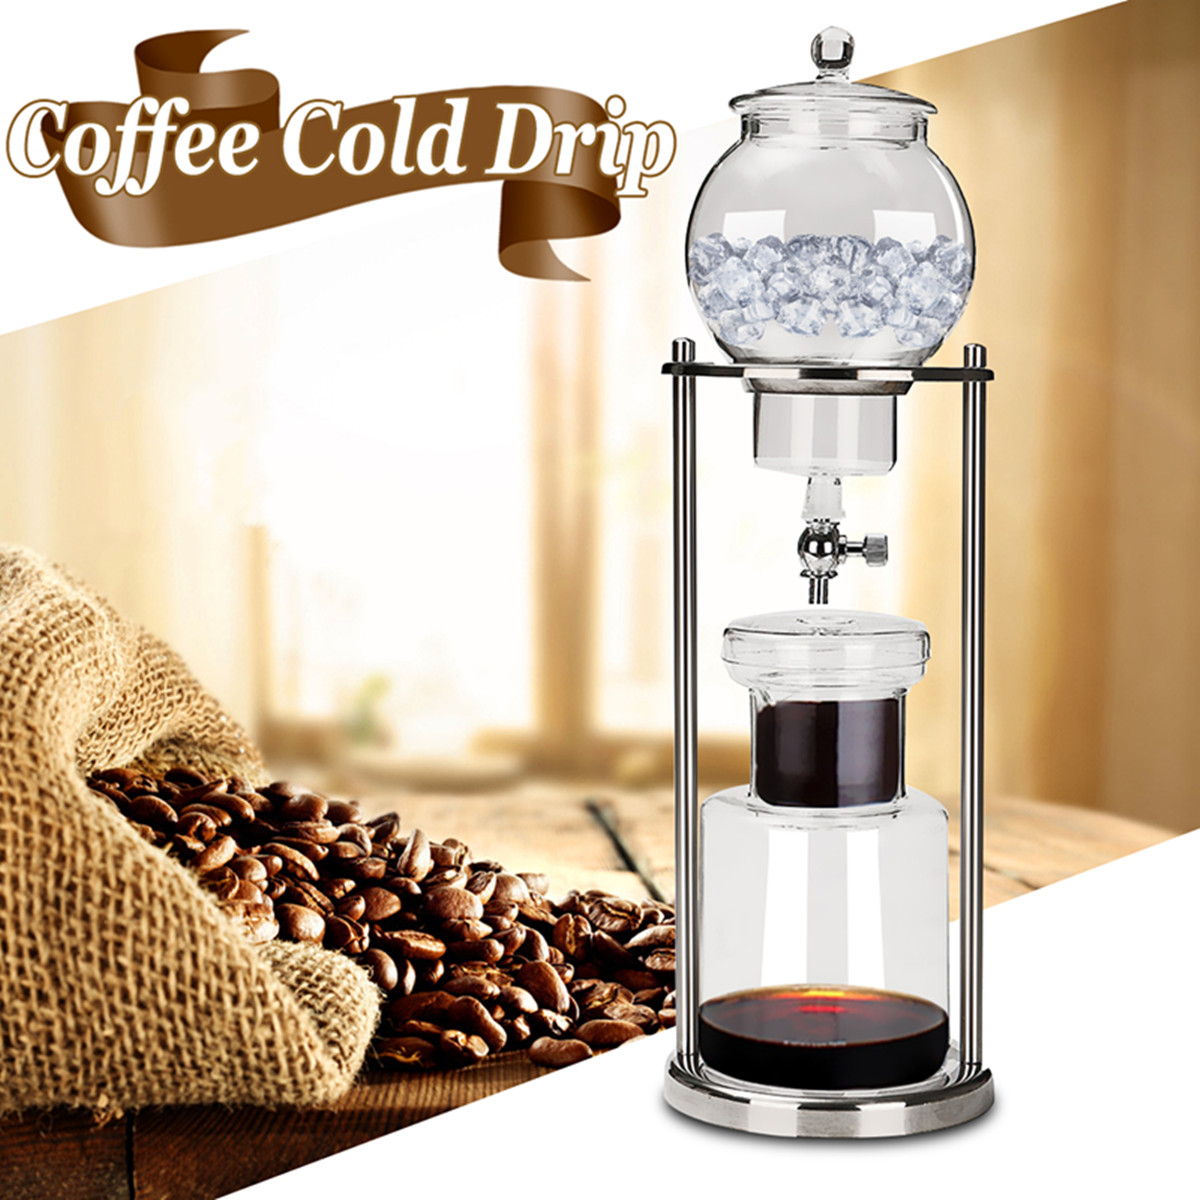 "1000ml New Dutch Coffee Cold Drip Water Drip Coffee Maker Serve For 10 Cups 18x6"" Inch (diameter * height)"